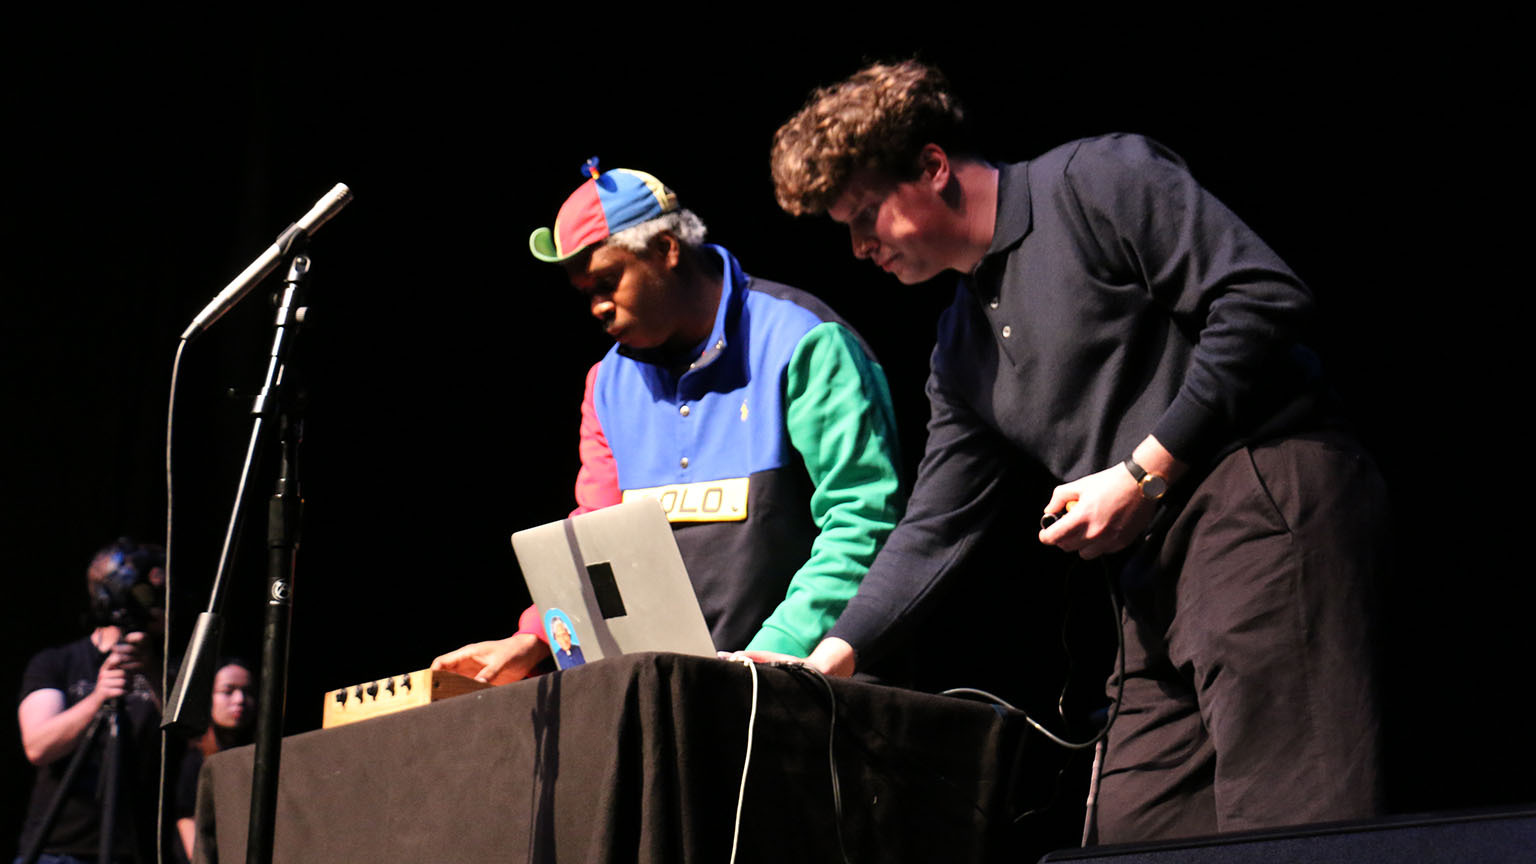 Two men playing a laptop and box instrument on stage.